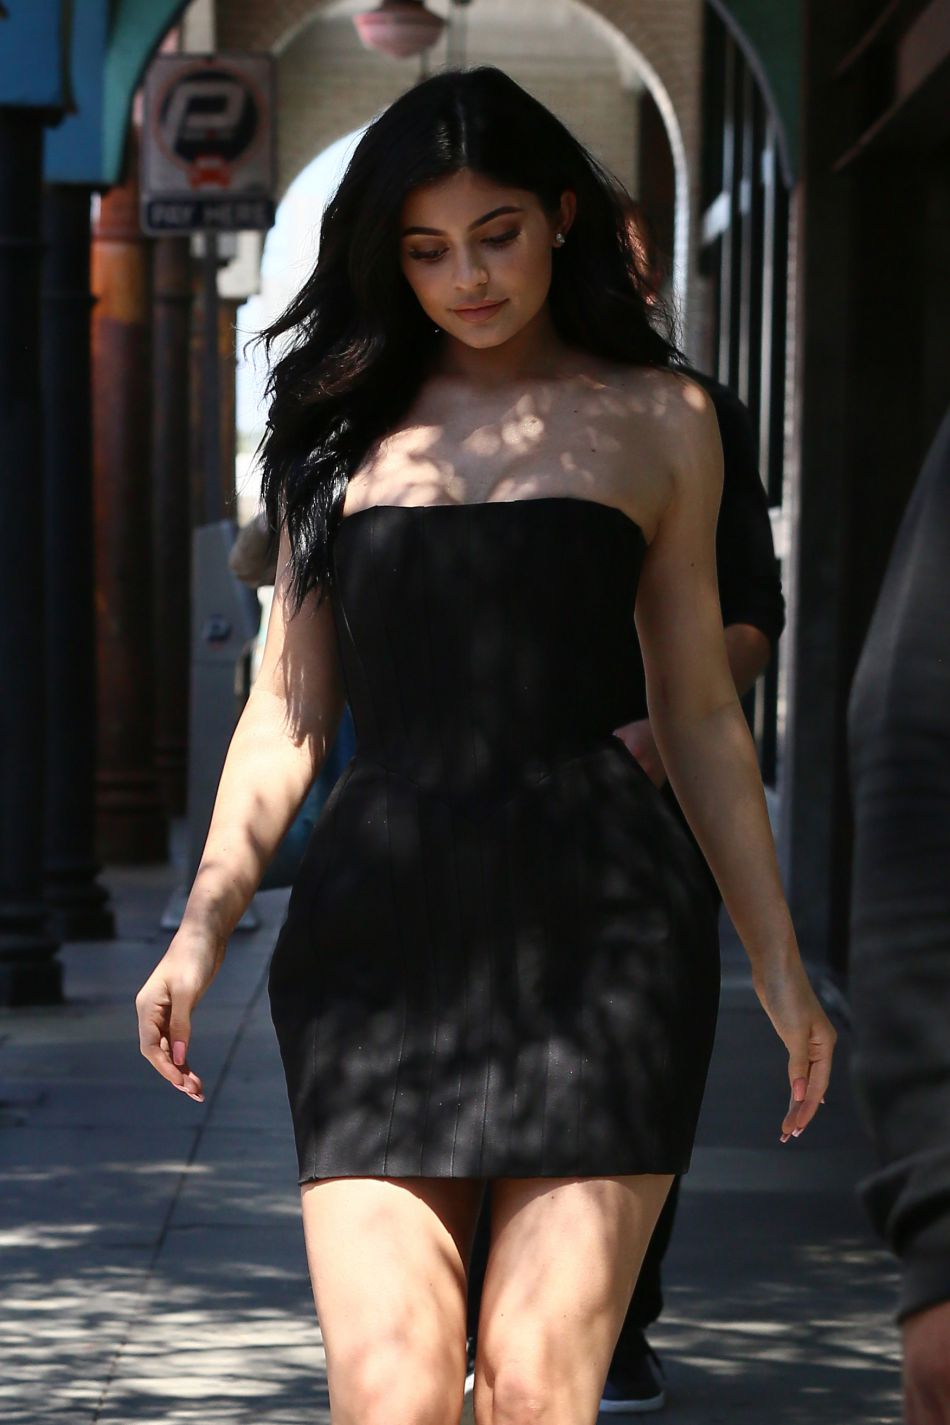 Kylie Jenner Robe Kylie Jenner Moulee Dans Une Toute Petite Robe Bustier